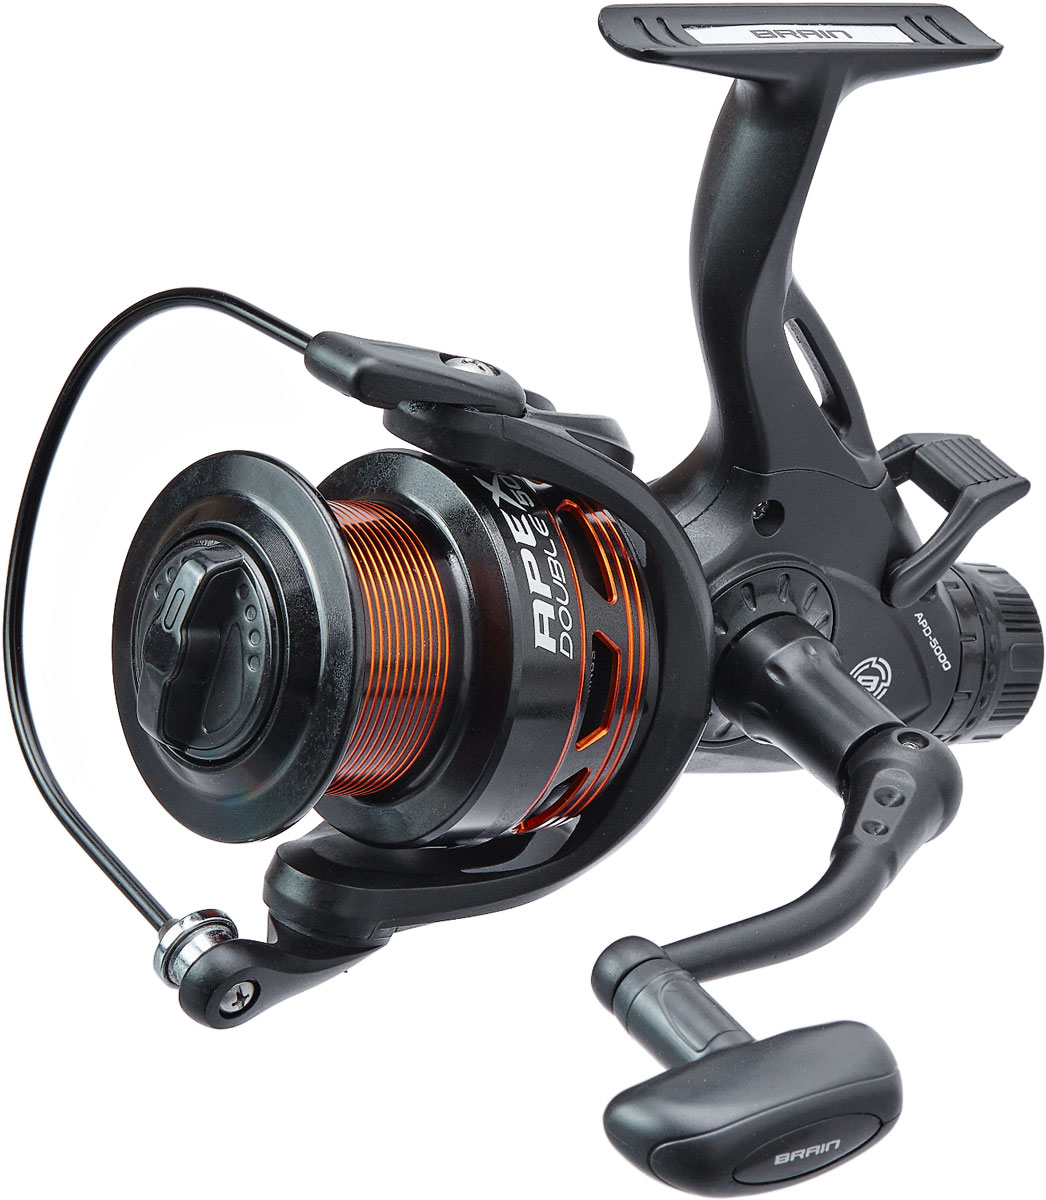 Катушка Brain Apex Double Baitrunner 5000 6+1BB 5.2:1 (арт.18584169)